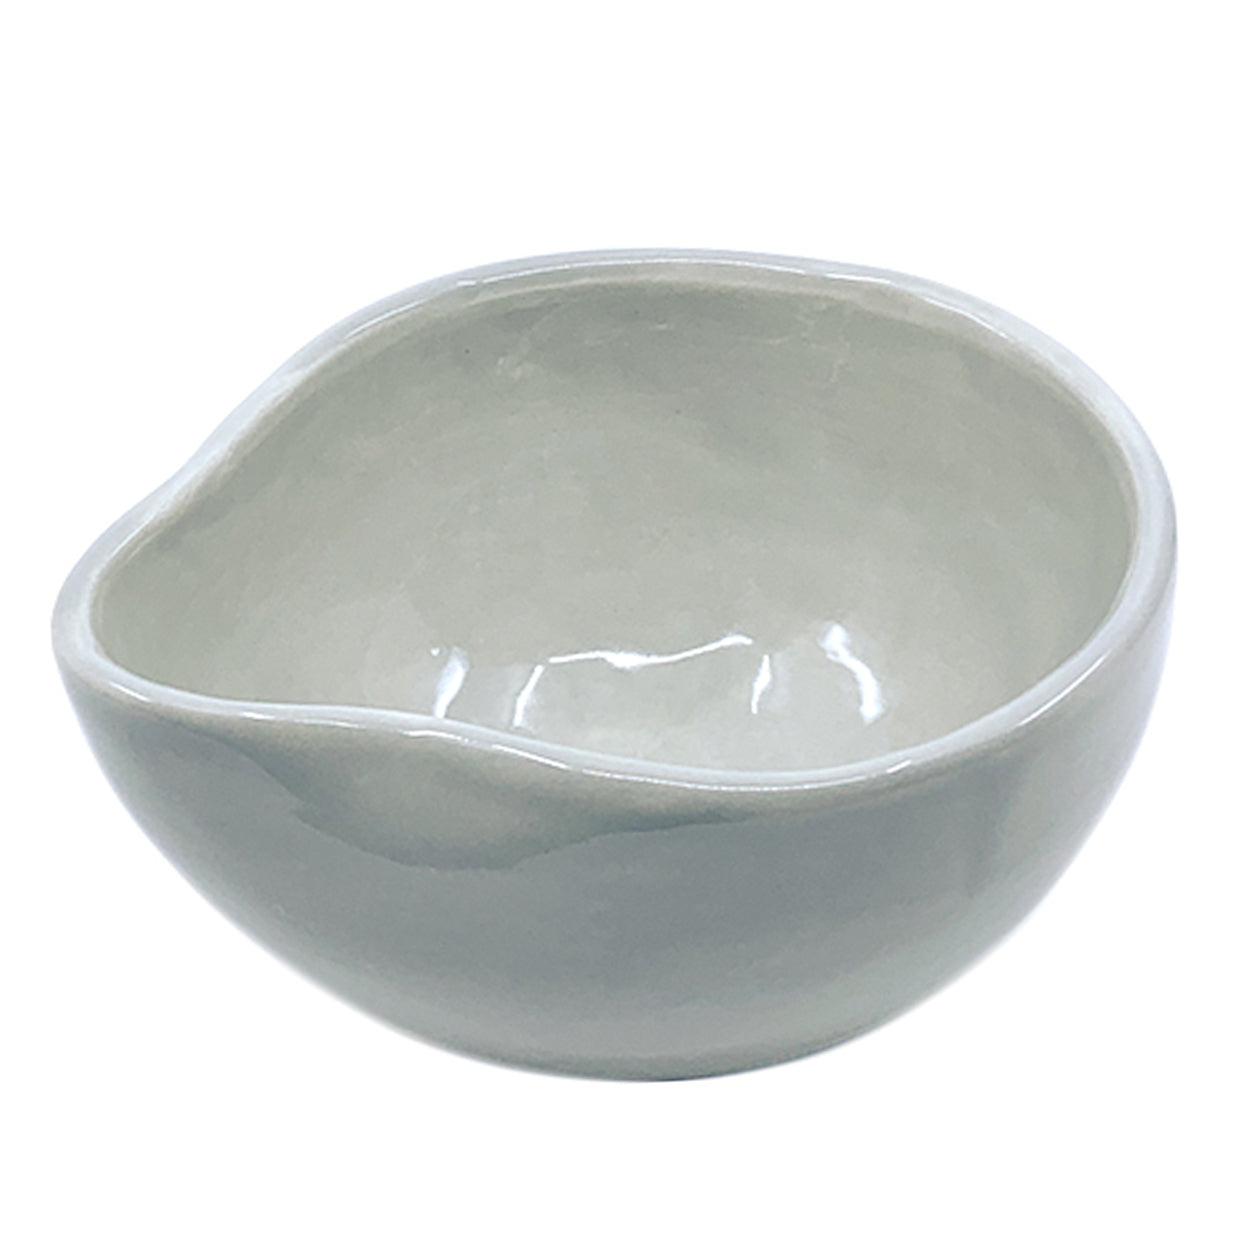 LARGE POURING BOWL ELEPHANT